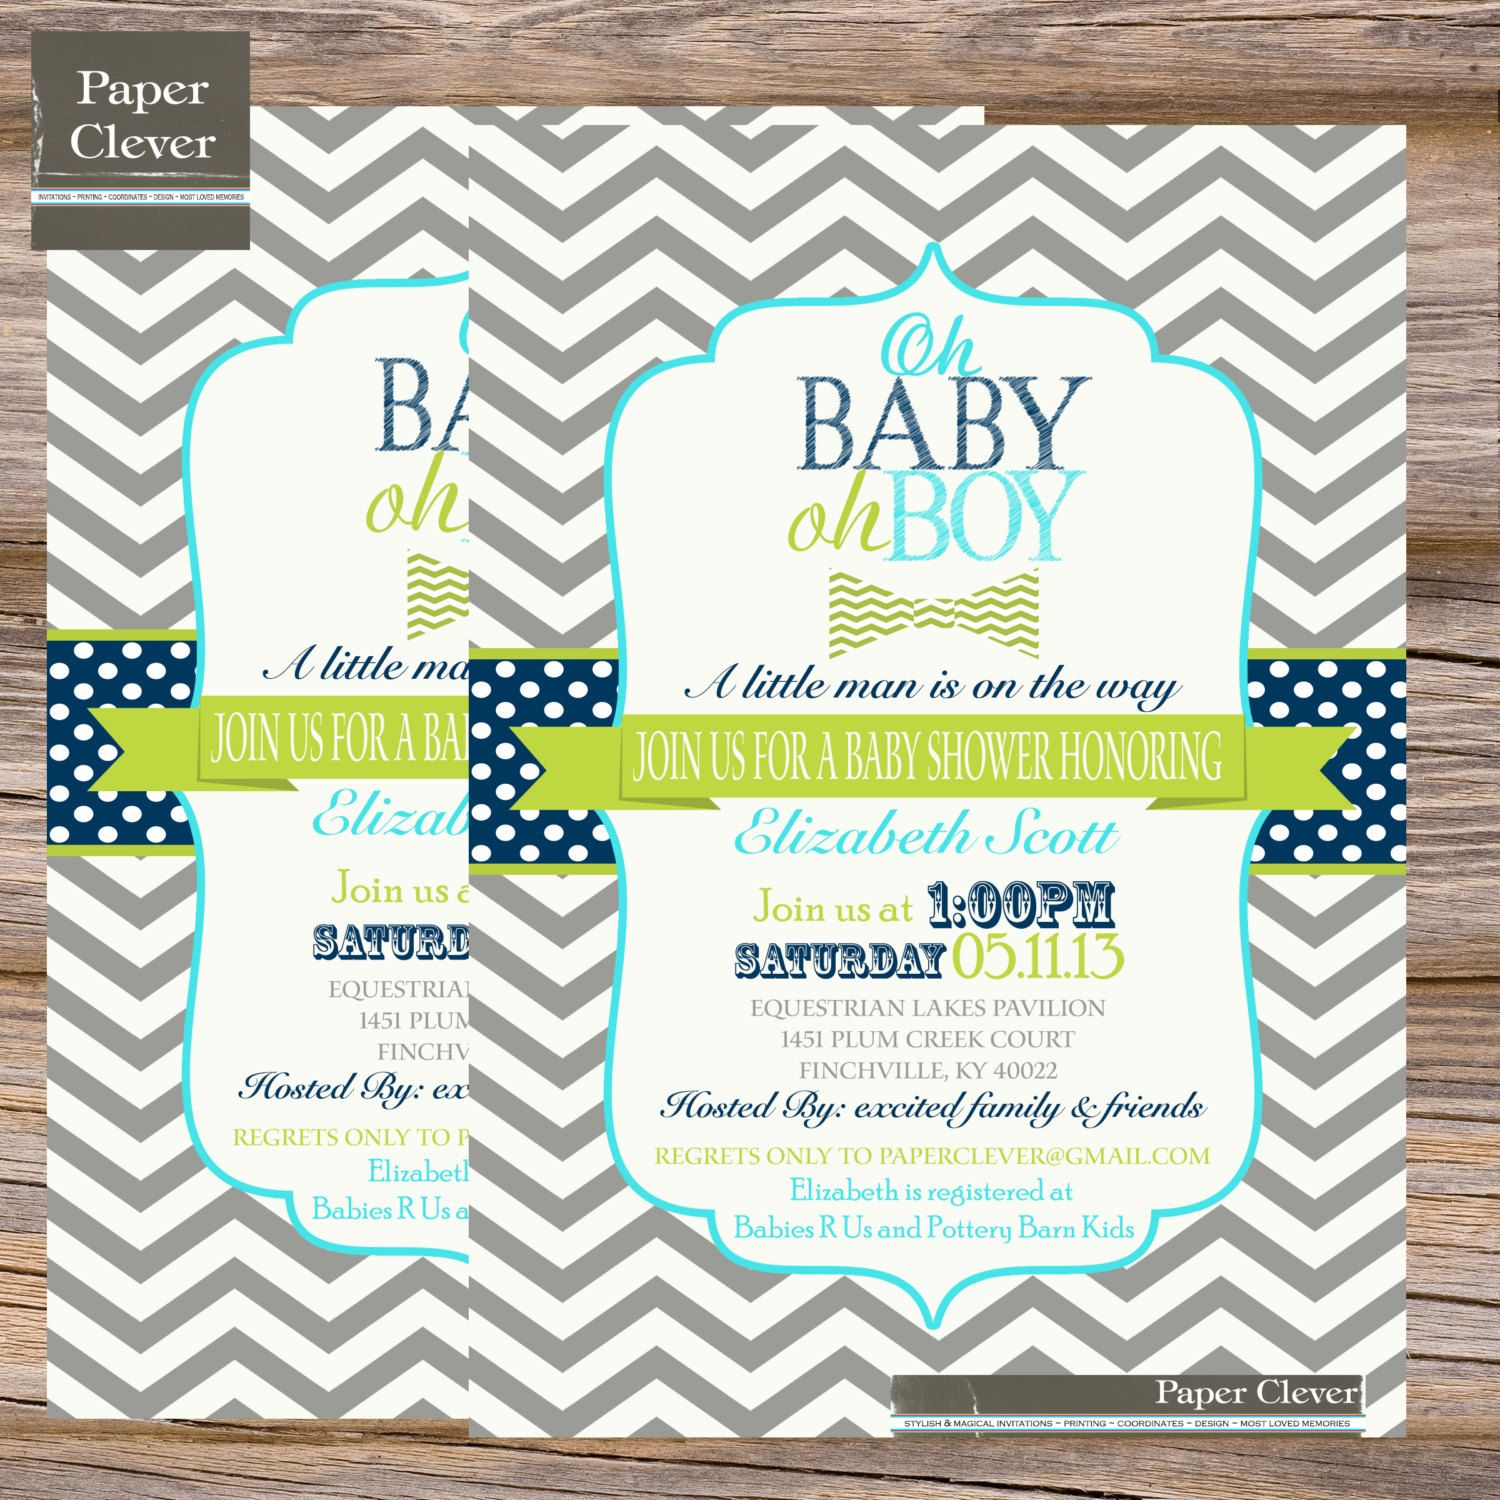 Boys baby shower invitation chevron oh boy bowtie by paperclever ...